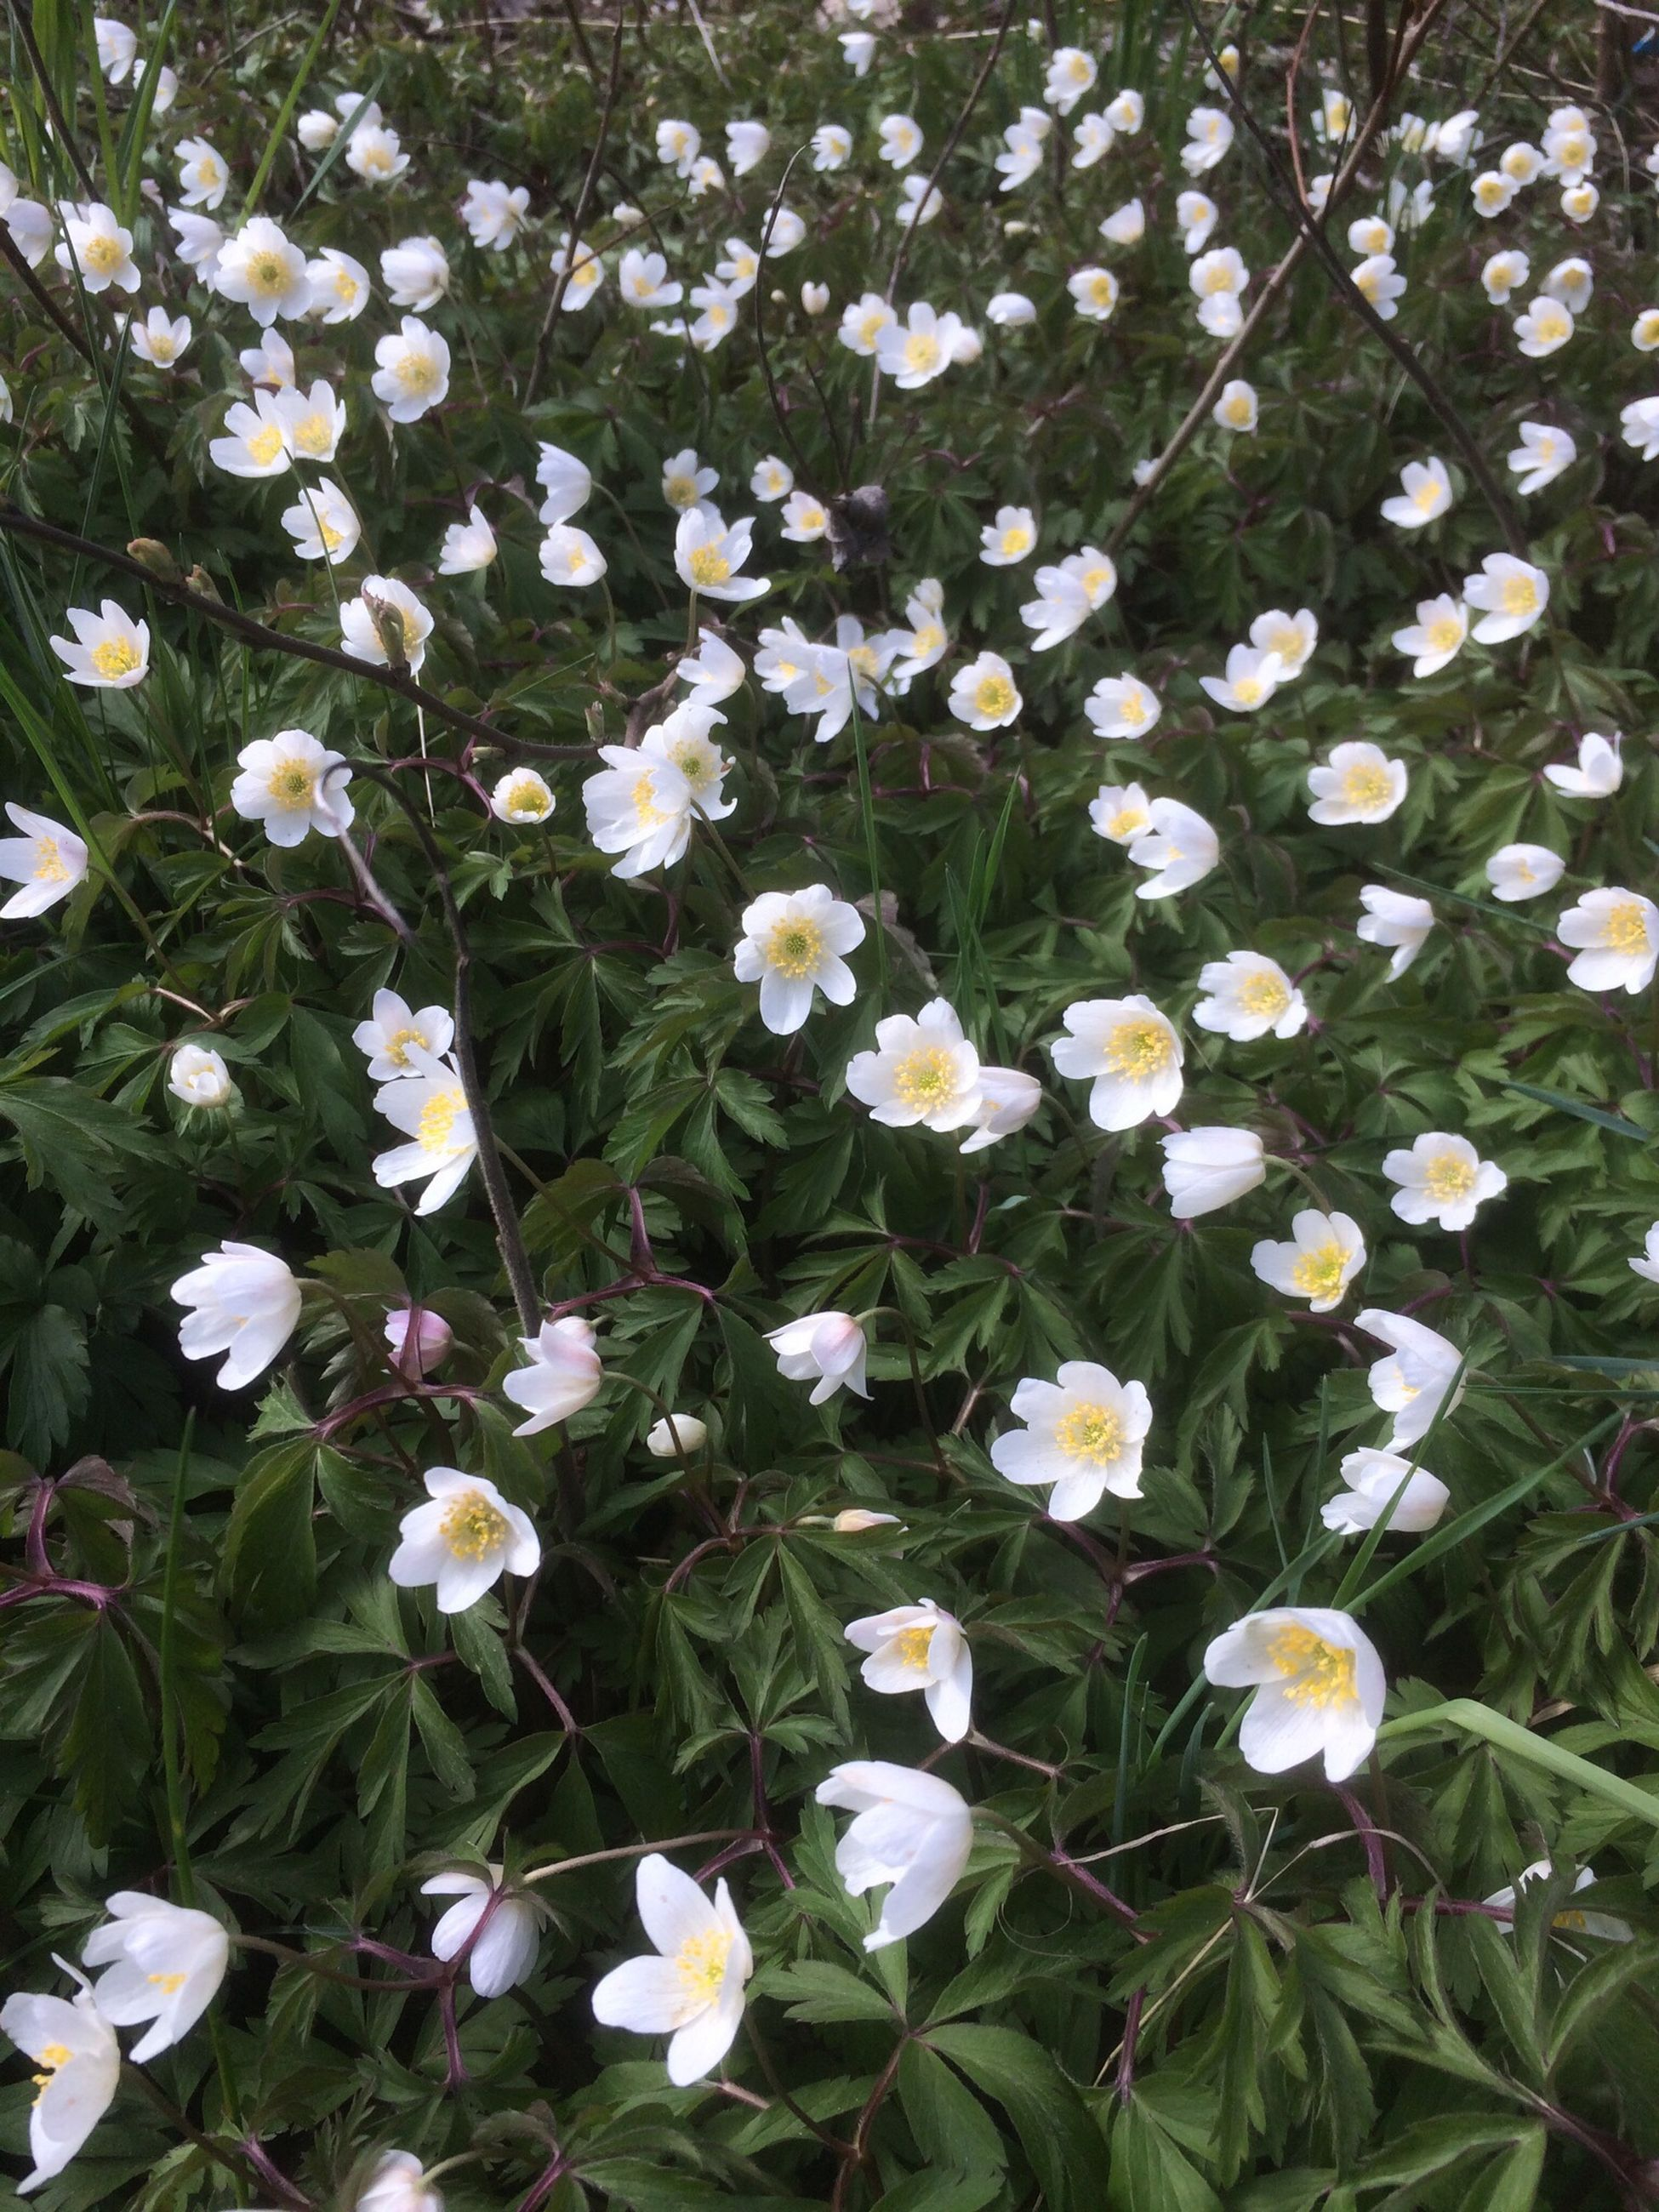 flower, nature, growth, beauty in nature, white color, fragility, plant, freshness, no people, petal, springtime, day, outdoors